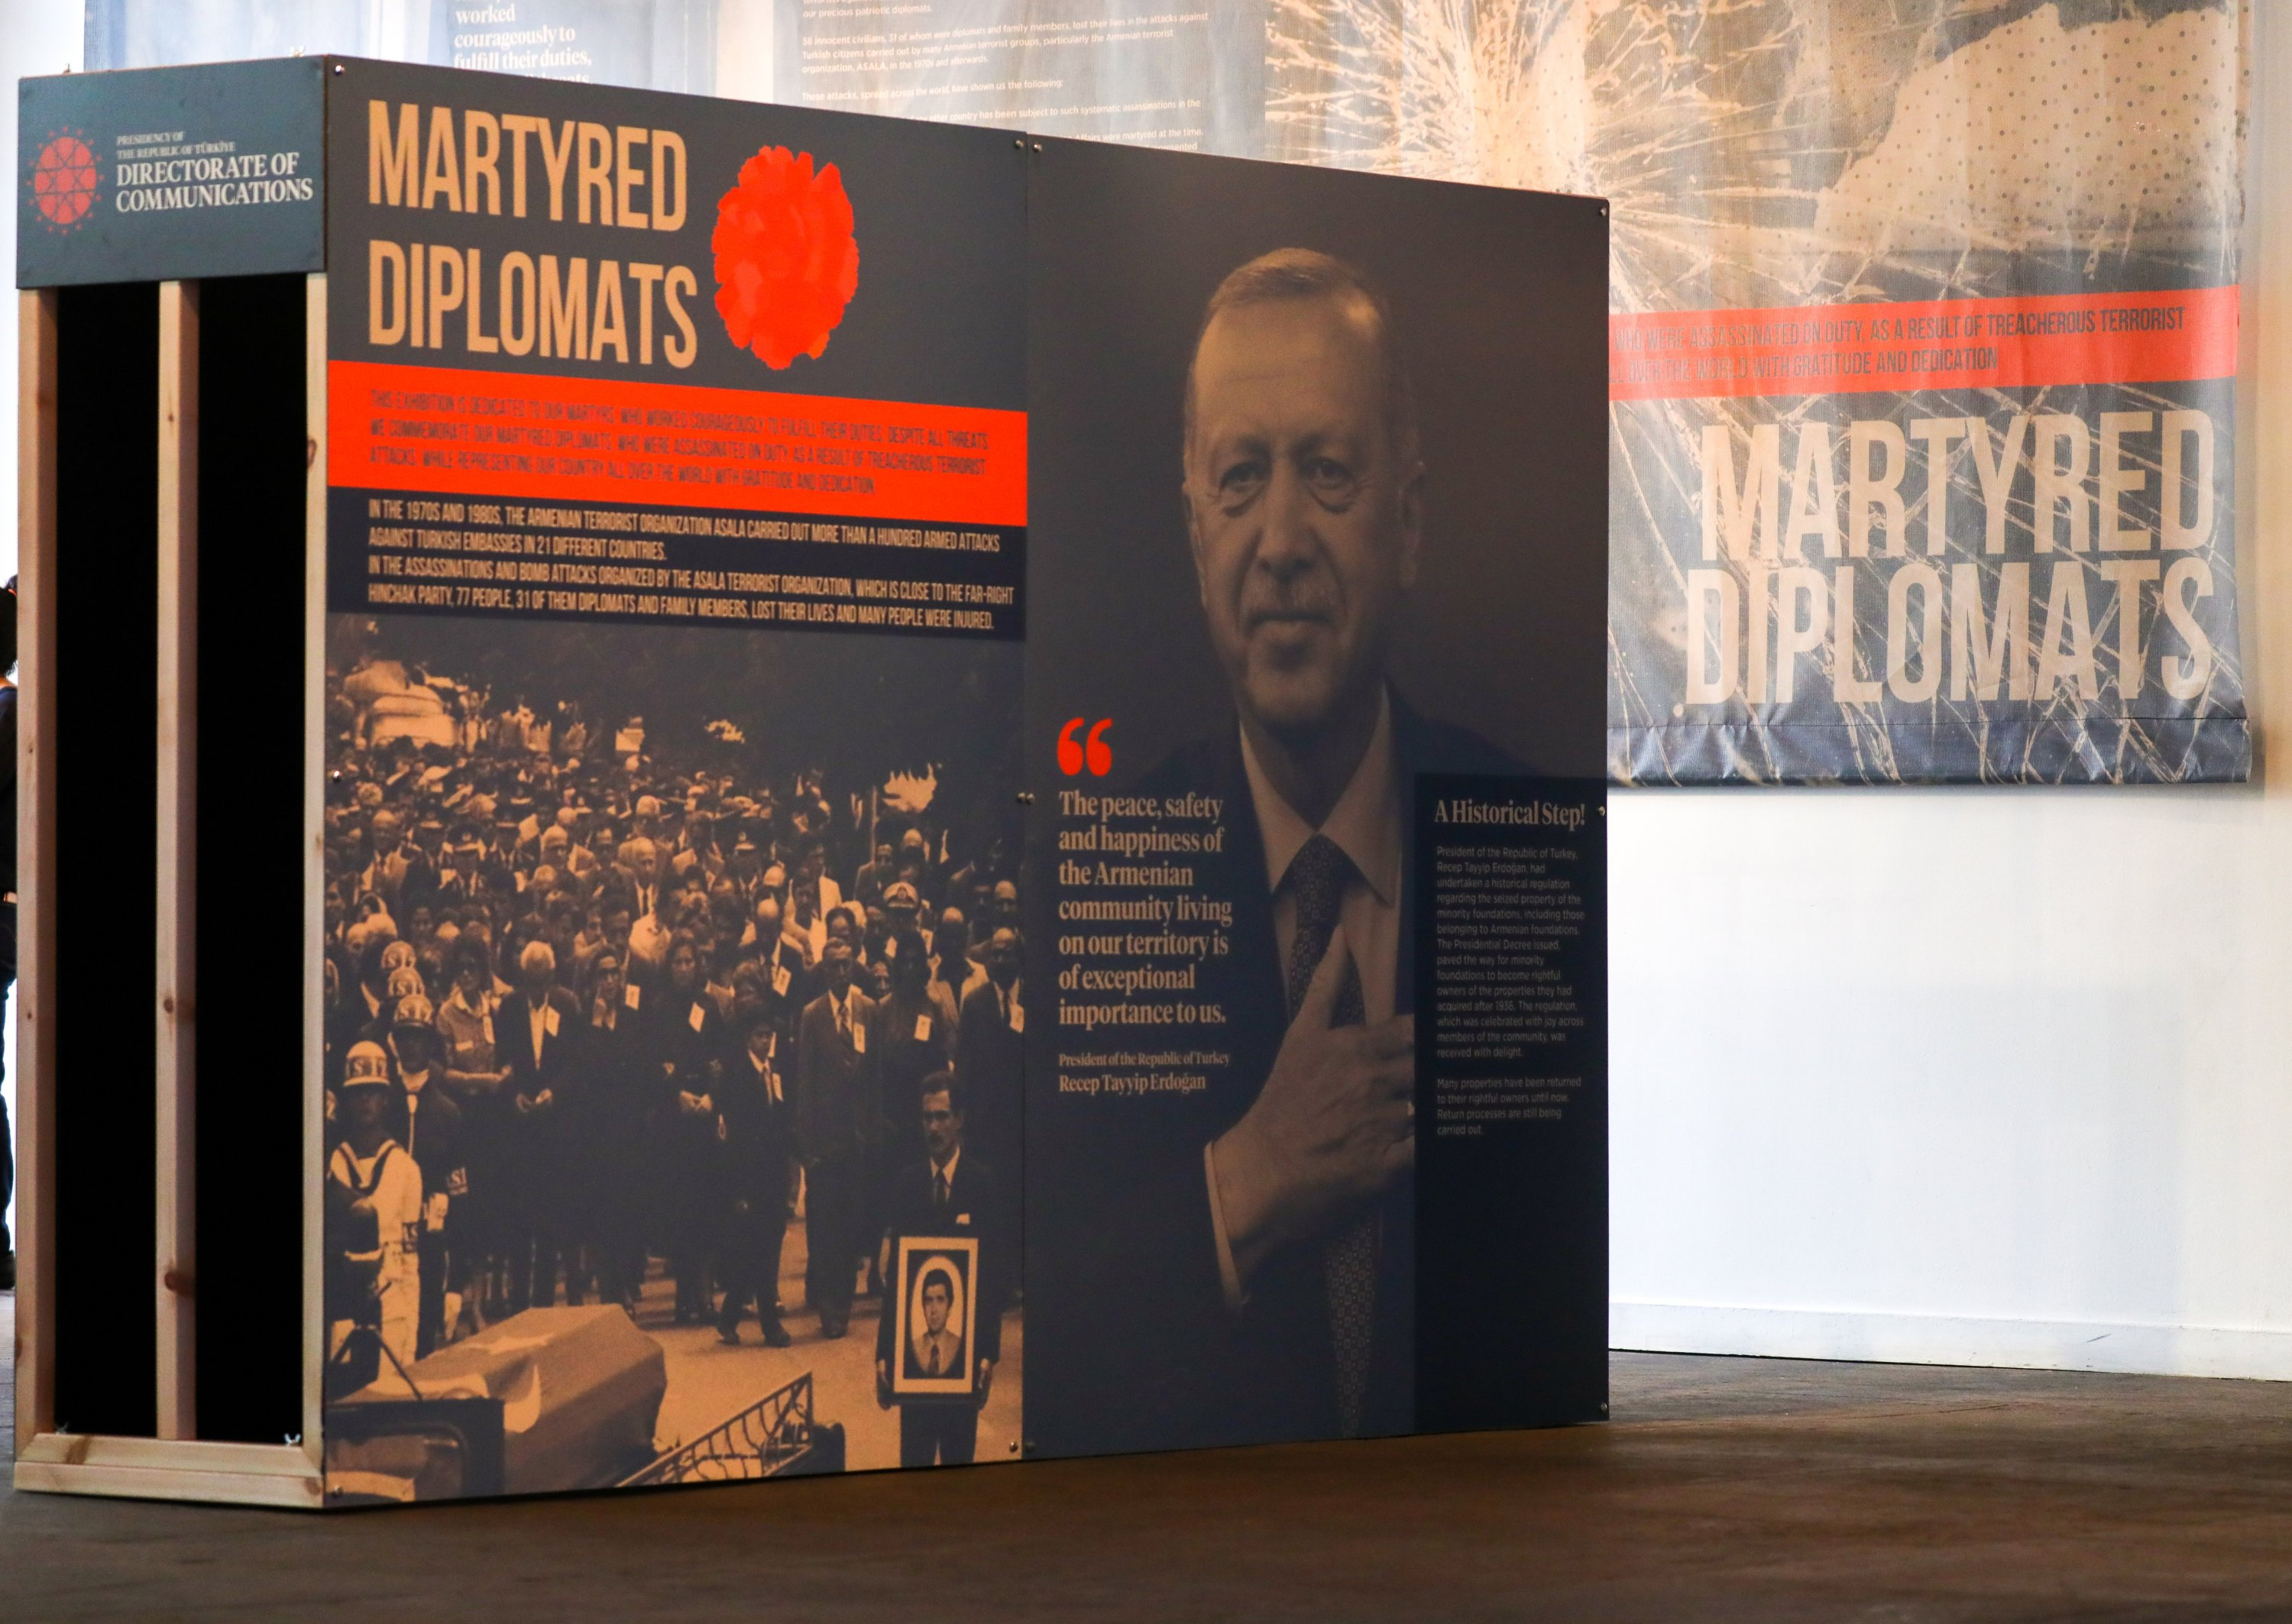 Turkey's Directorate of Communications has opened an exhibition in the United States' capital Washington, D.C.in memory of Turkish diplomats killed by Armenian terrorists, Washington, D.C., U.S., May 18, 2021. (AA Photo)